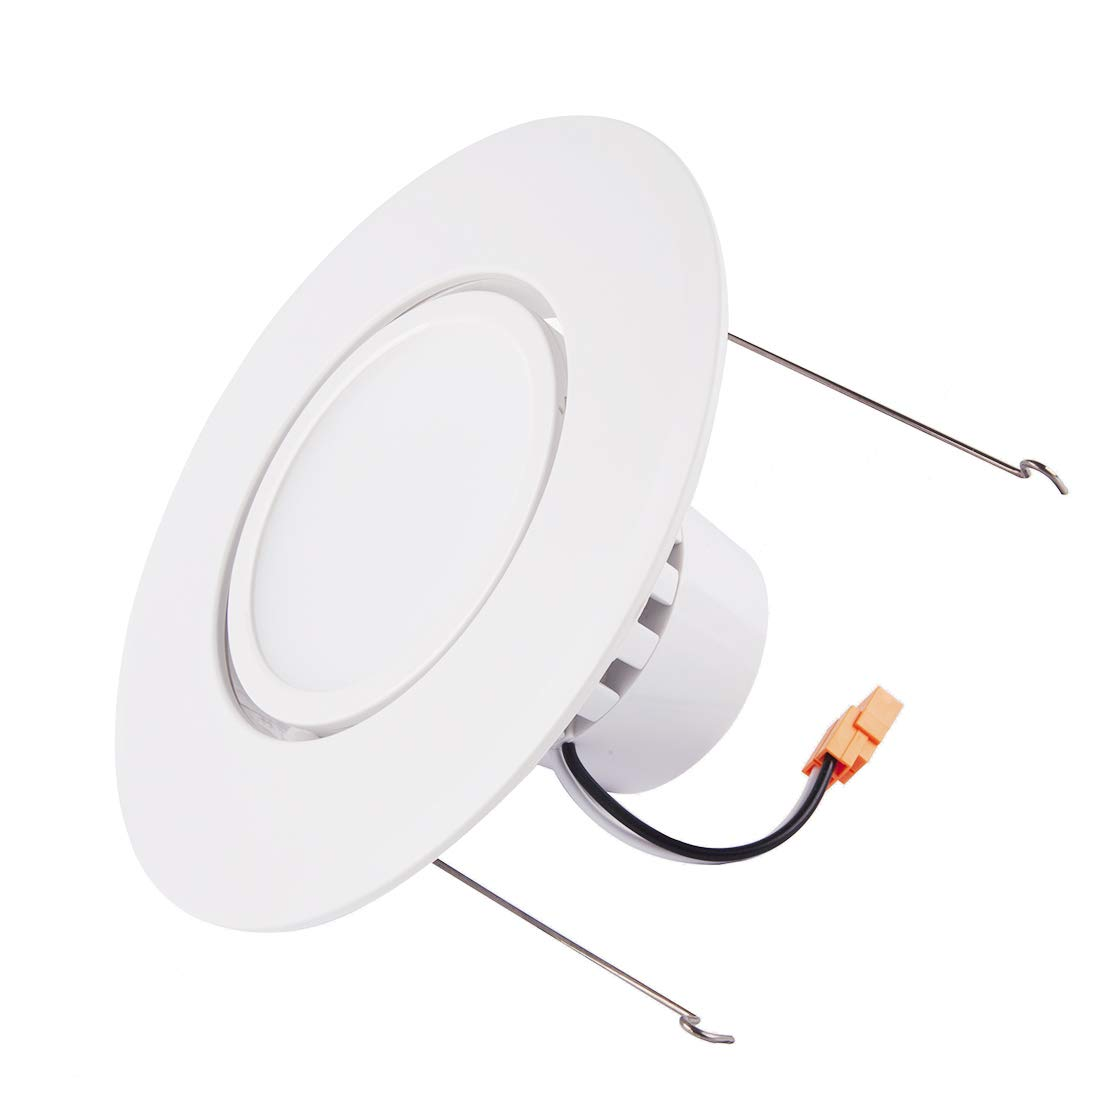 JJC Recessed Lighting 6 Inch LED COB Dimmable Gimbal Downlight Ceiling Lights 12W(80W Equiv.)840LM 5000K Daylight Energy Star Certified&ETL-Listed